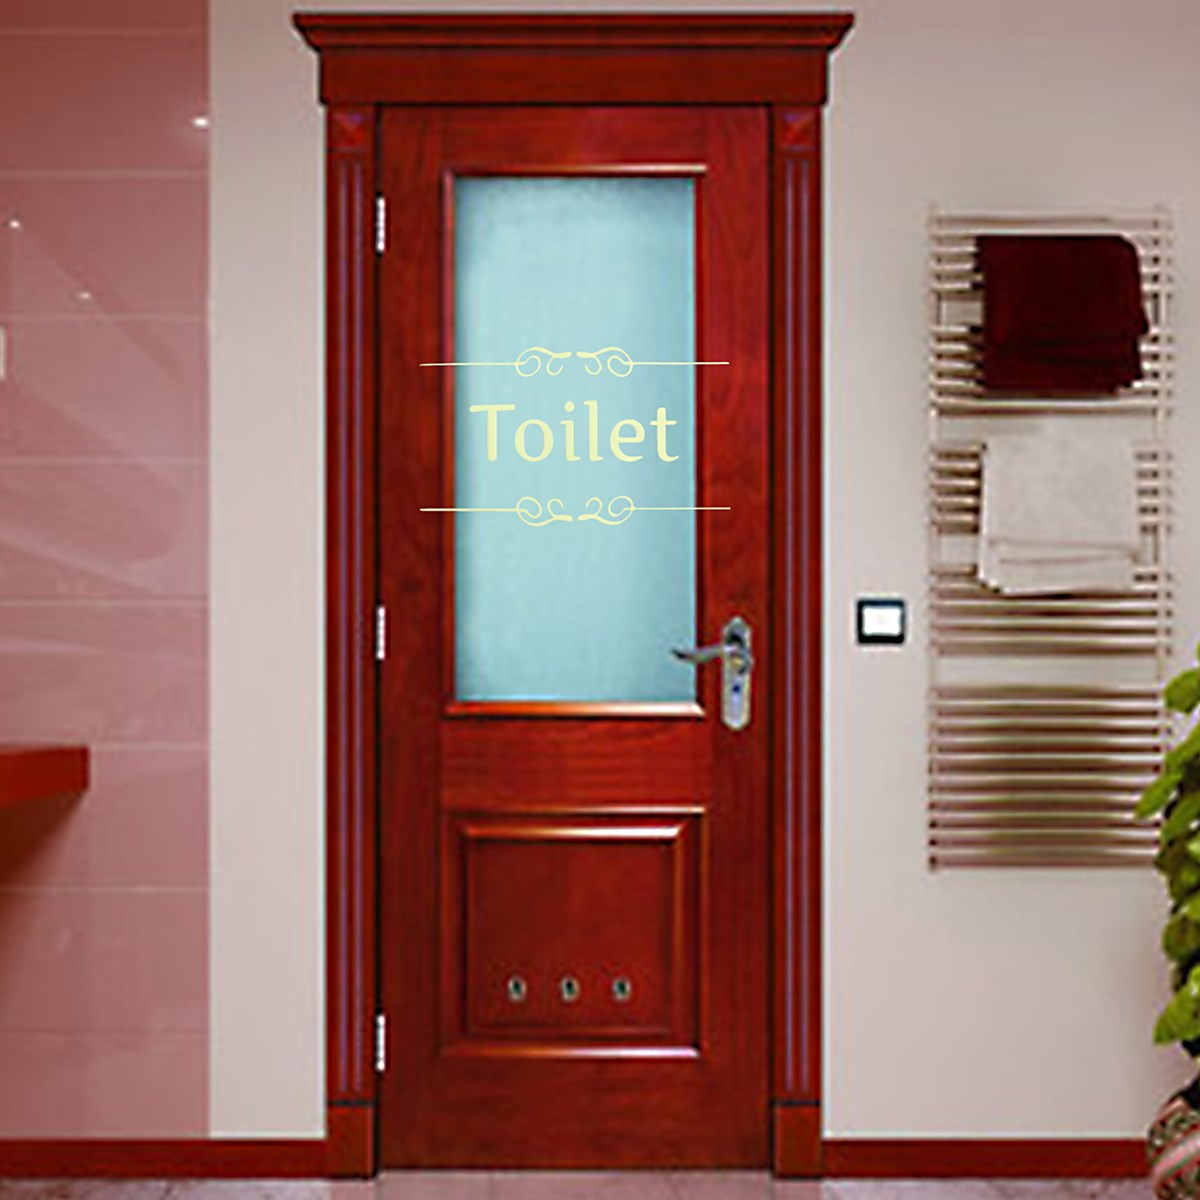 Glass office doors - Bathroom Sign Stickers Newest Shower Room Toilet Door Entrance Decoration Wall Decals For Shop Office Home